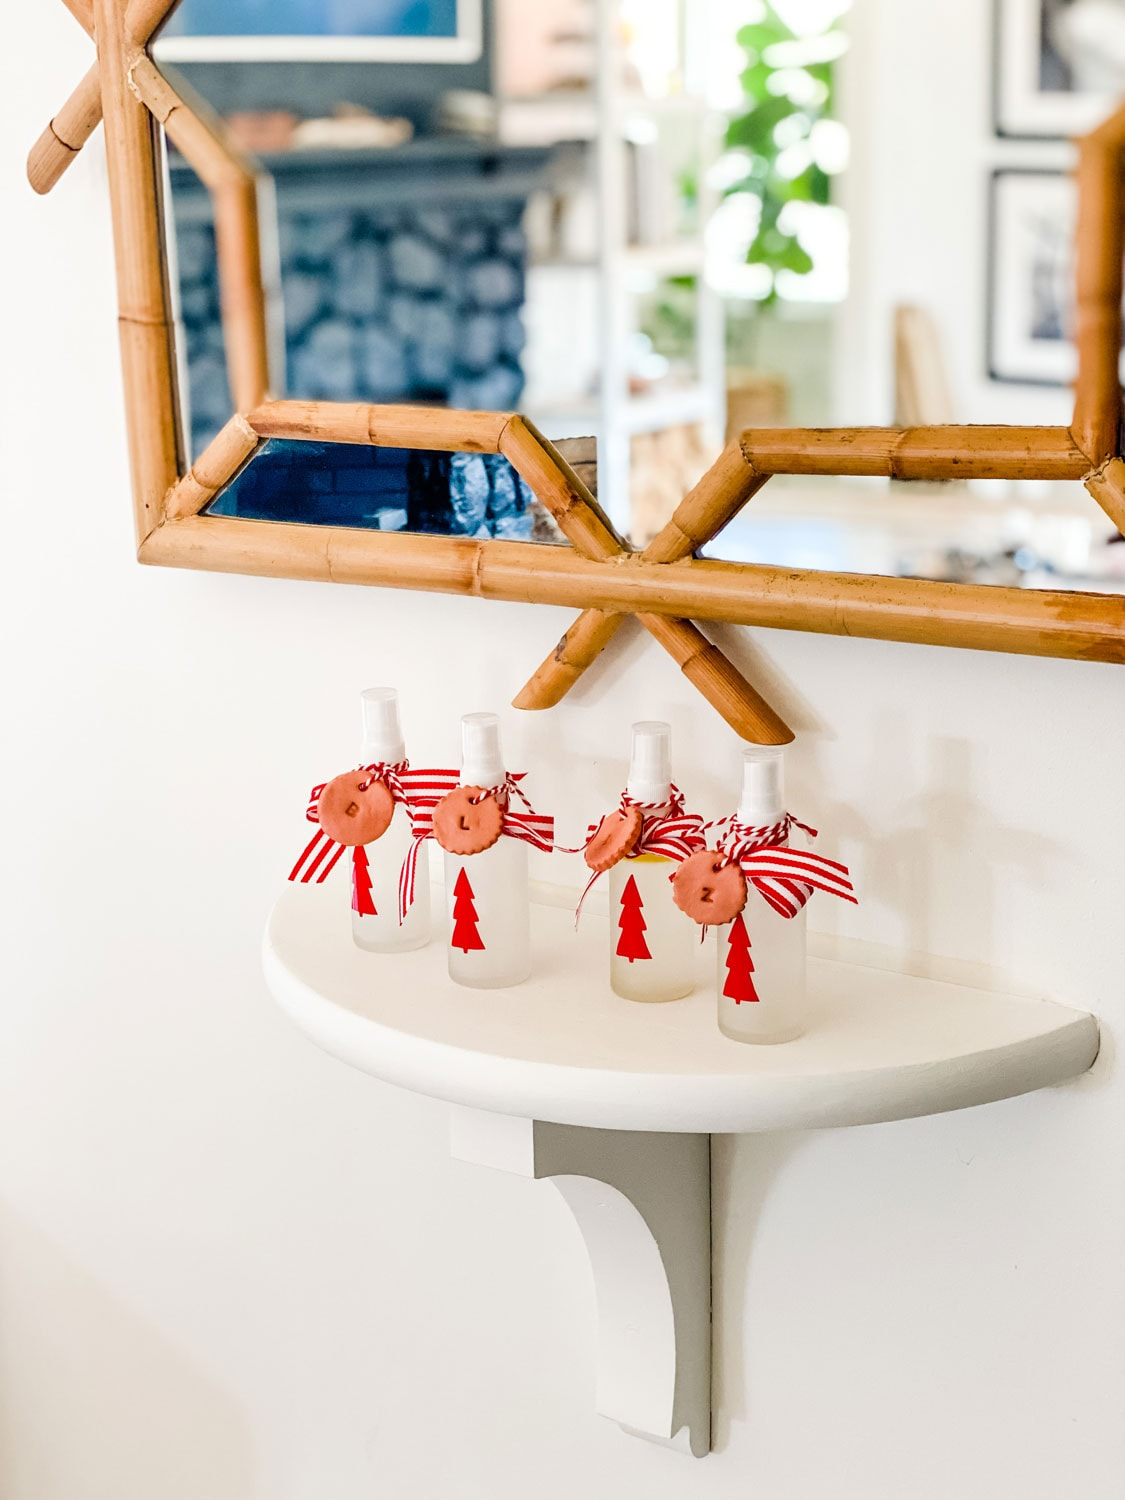 small frosted glass bottles with red tree decals and red and white ribbon with clay tag diffusers on small shelf under mirror